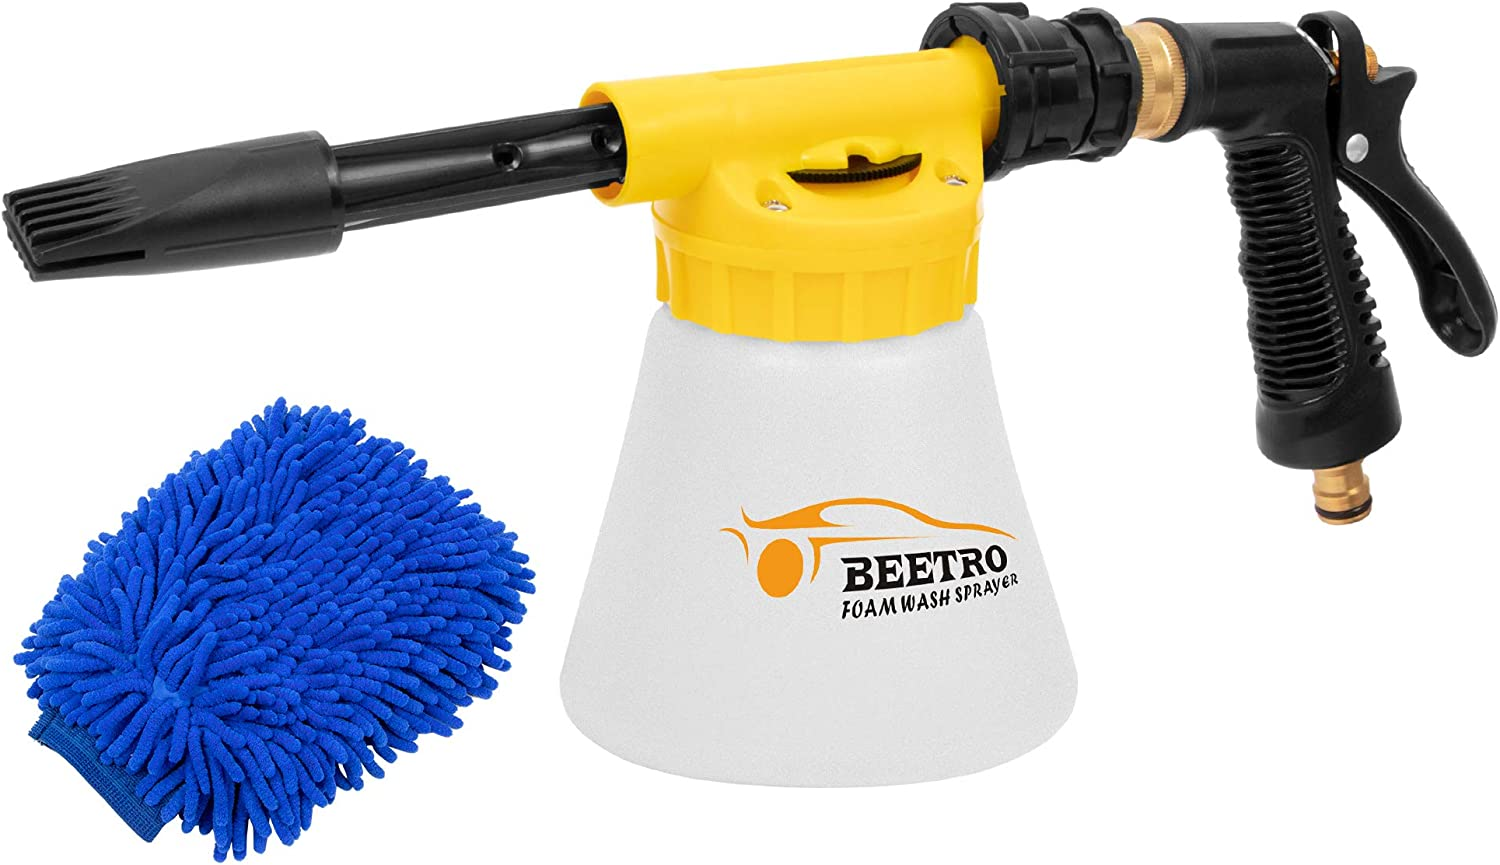 BEETRO Car Wash Foam Gun Sprayer with Thick Suds, Adjustable Ratio Dial Foam Wash Gun for Car Home Cleaning,0.23 Gal/900 ml Foam Cannon Attaches to Any Garden Hose (Foam Sprayer with Wash Mitt)